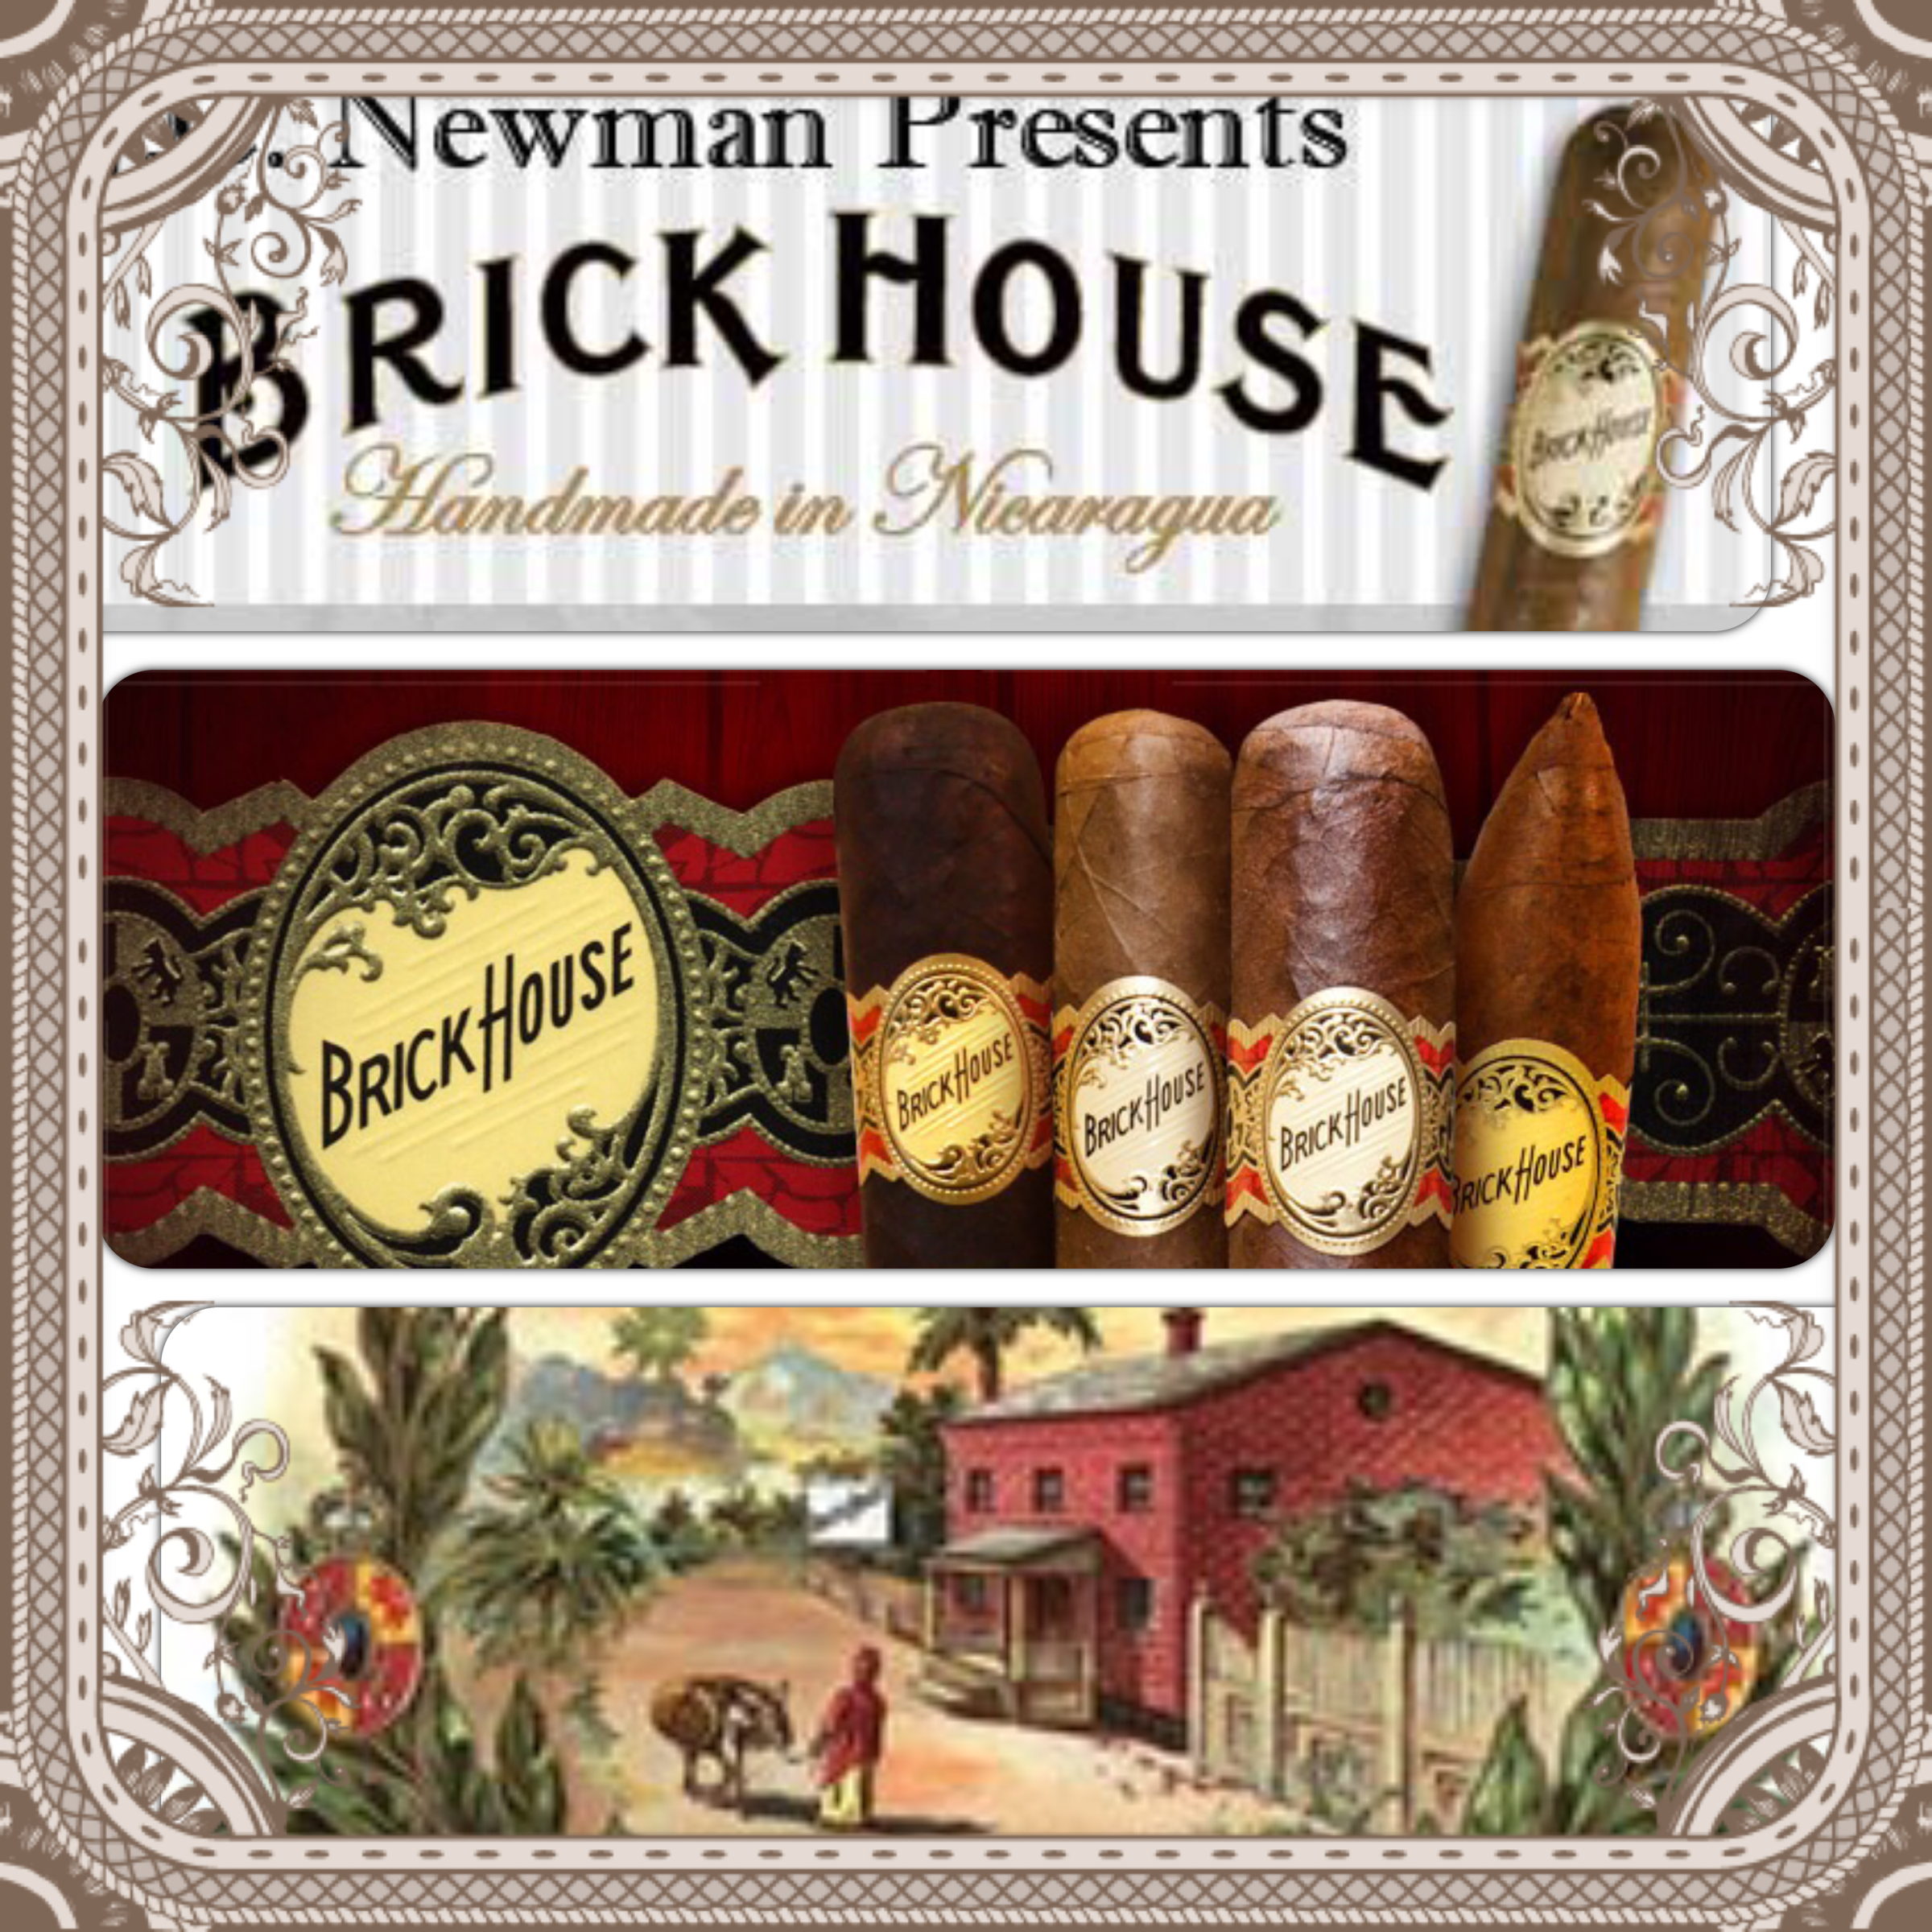 brick-house-cigars